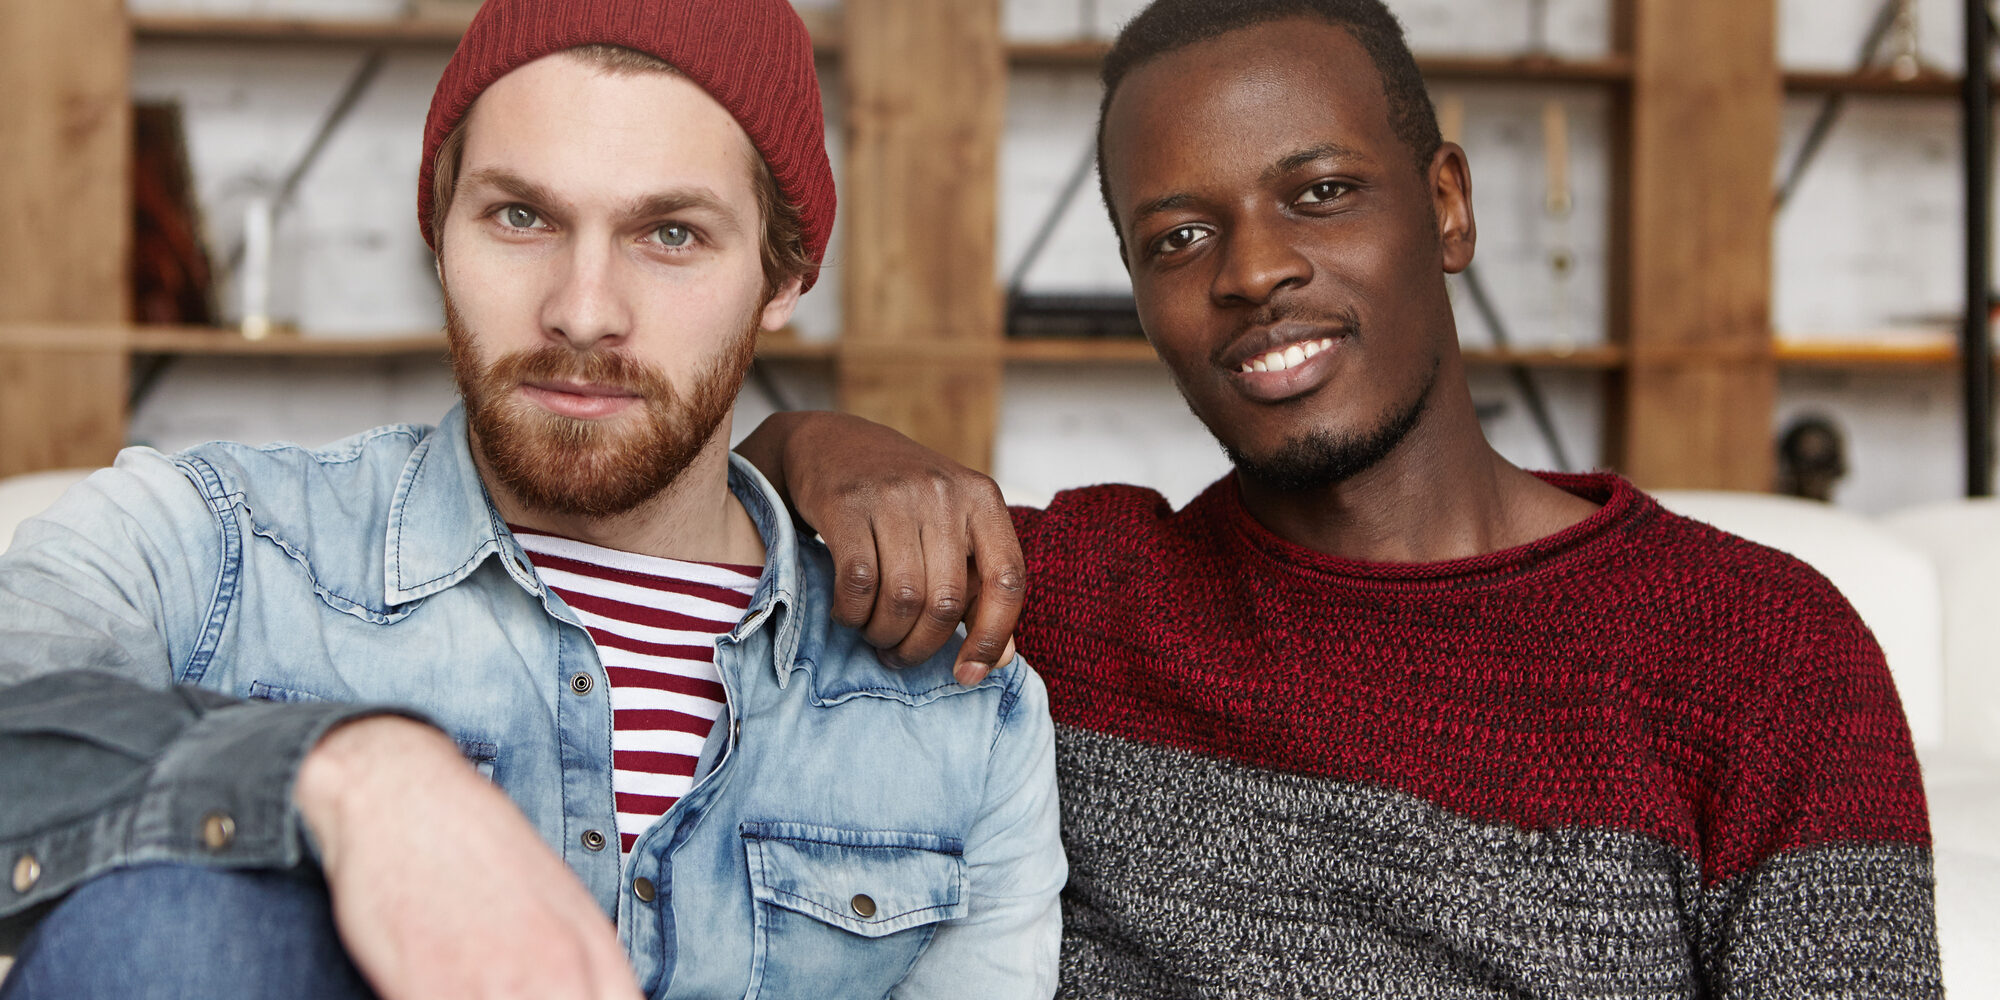 Homosexual love and relationships concept. Interracial gay couple relaxing at cafe: African-American man in sweater holding hand on his stylish bearded Caucasian boyfriend's shoulder in trendy hat